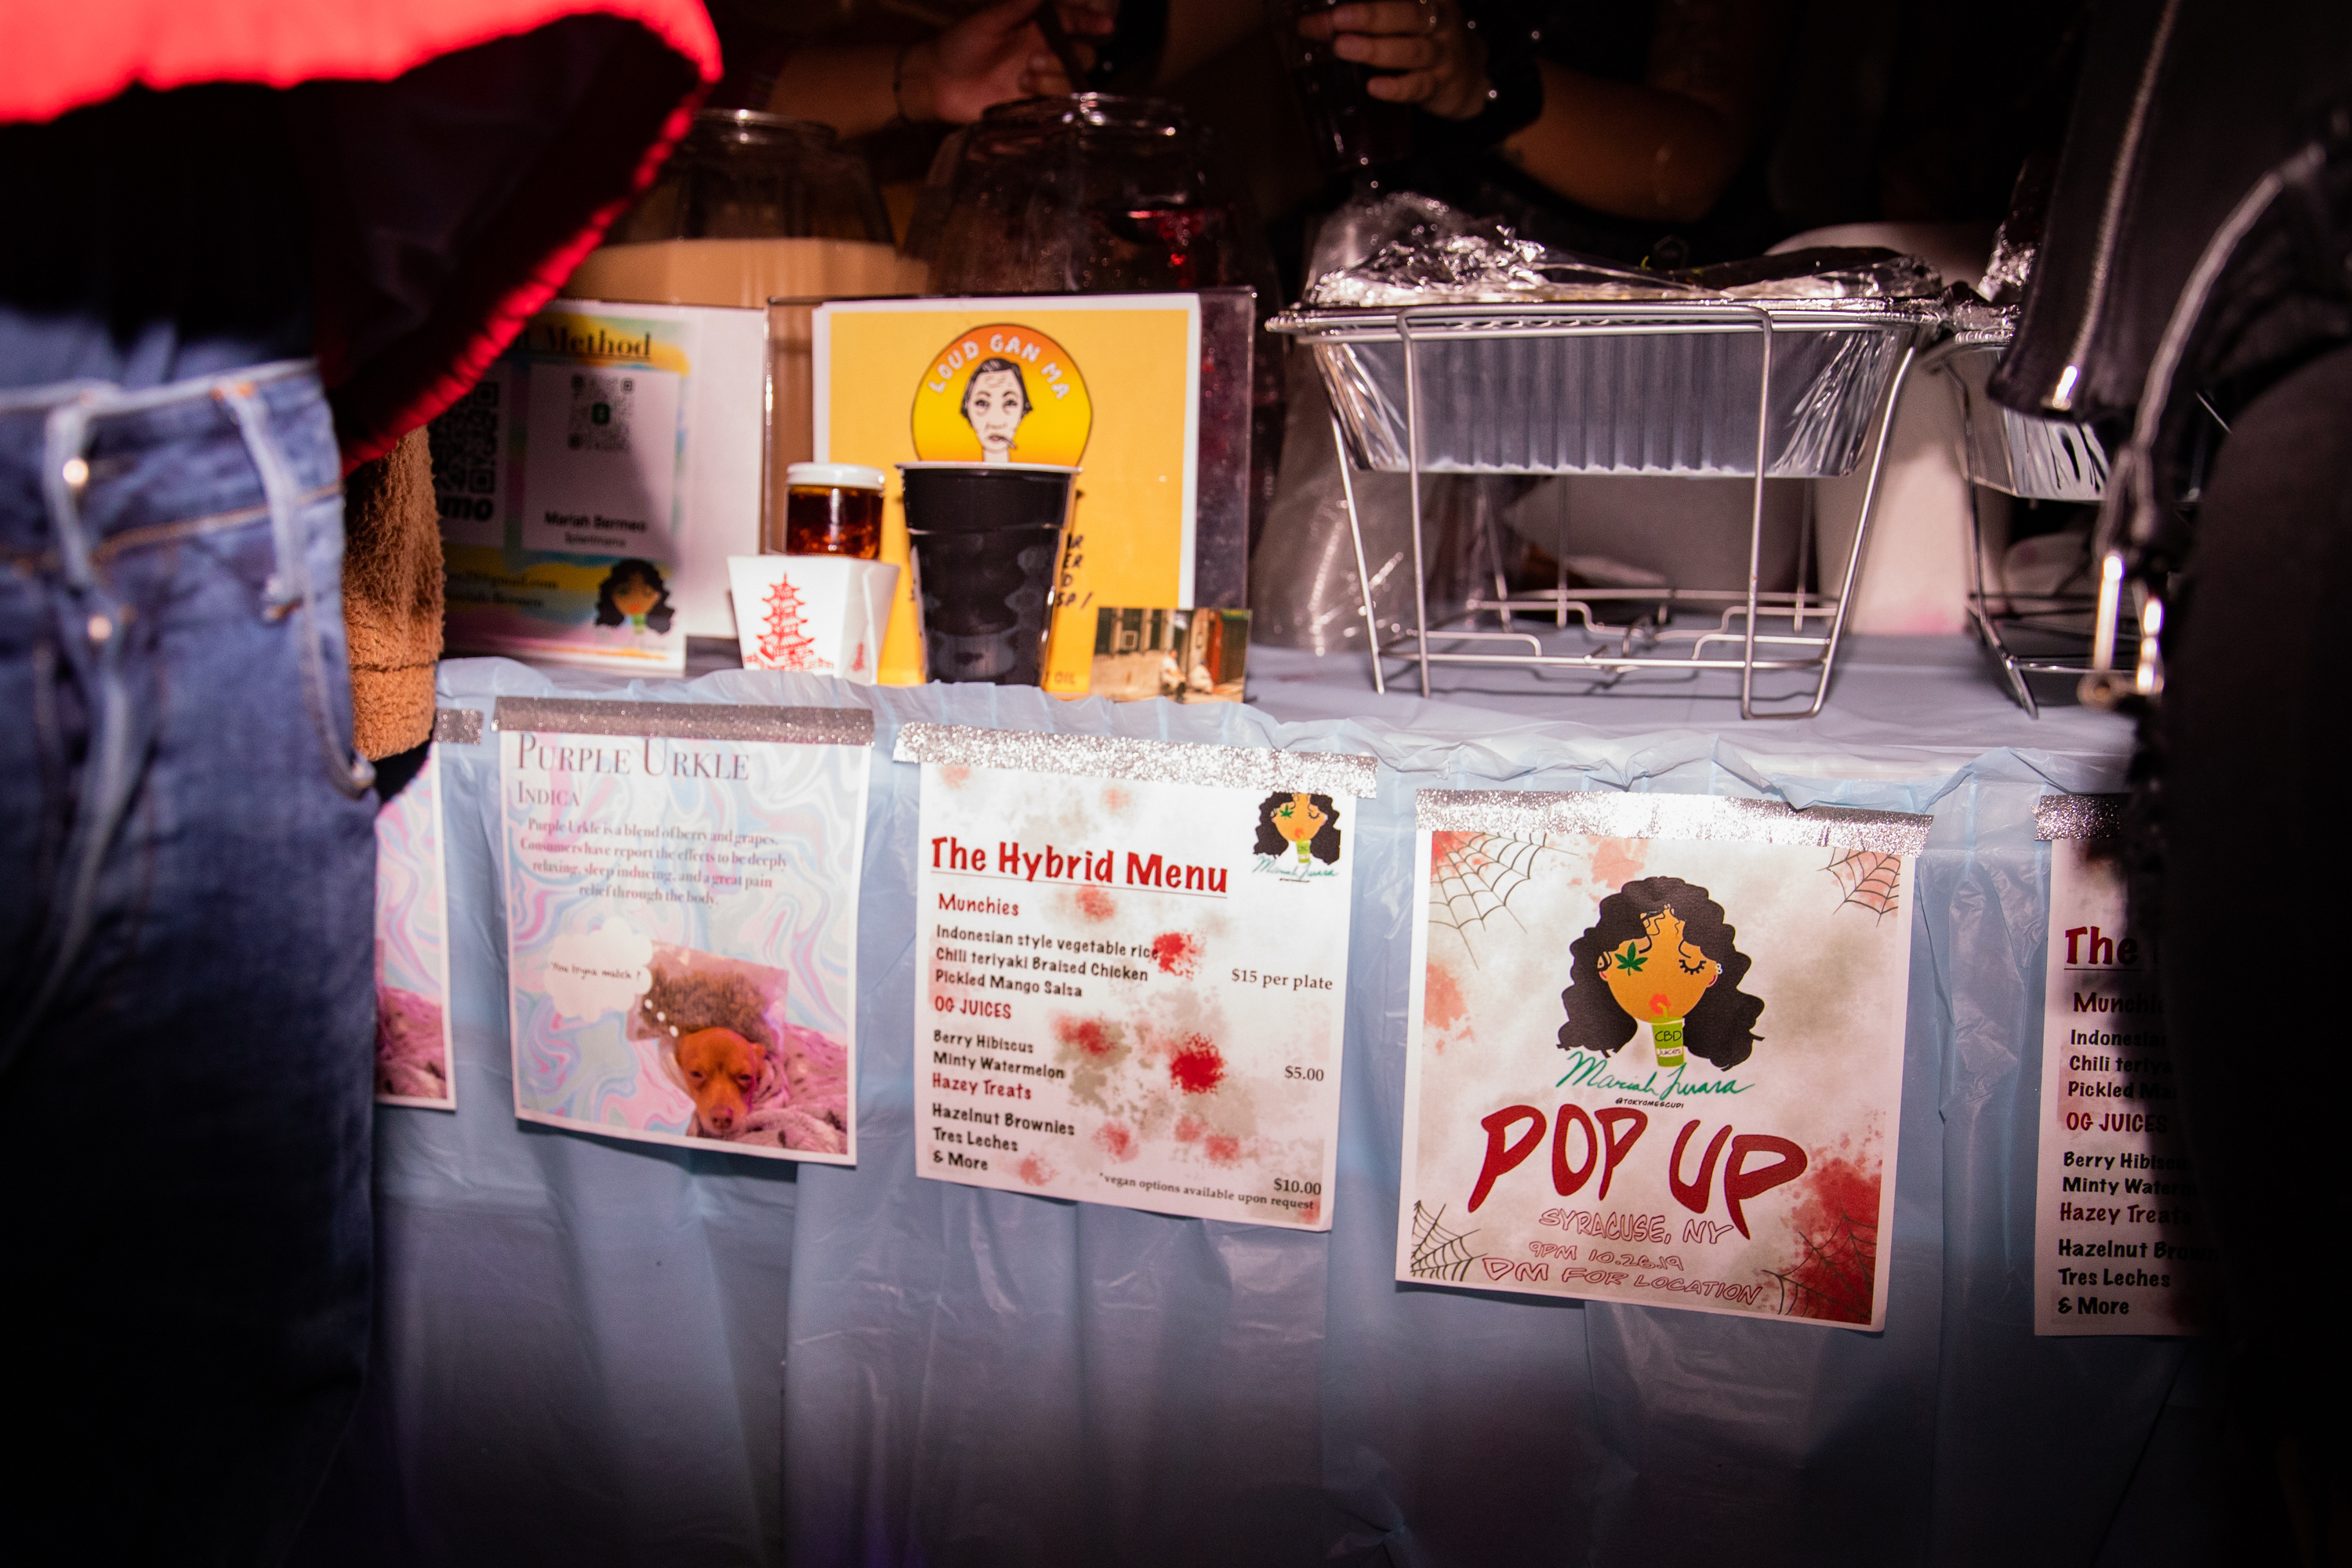 Placards display the menu for Mariah B's CBD pop-up food table at a party.